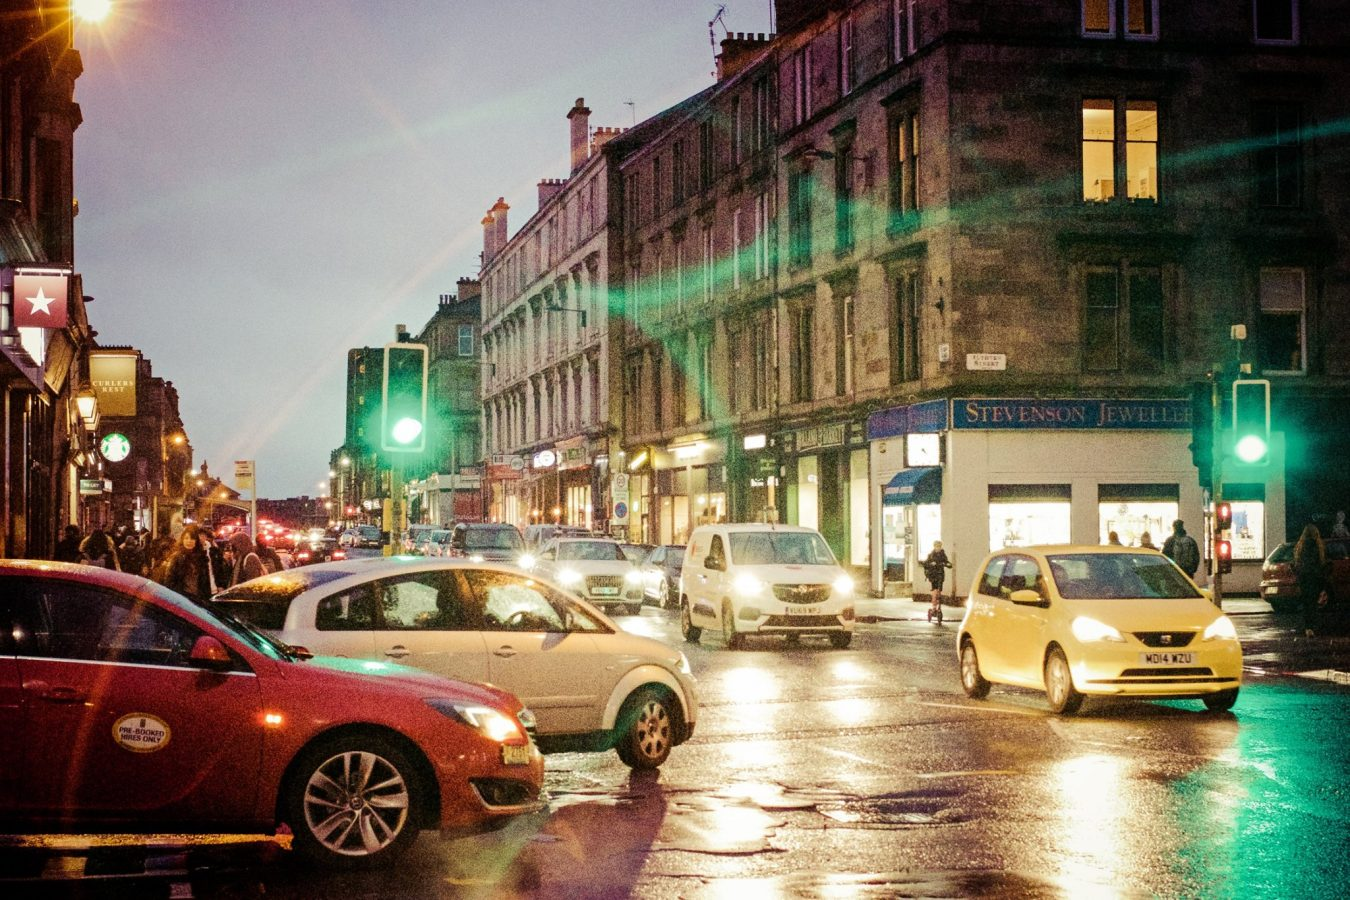 Colourful & busy Byres Road.